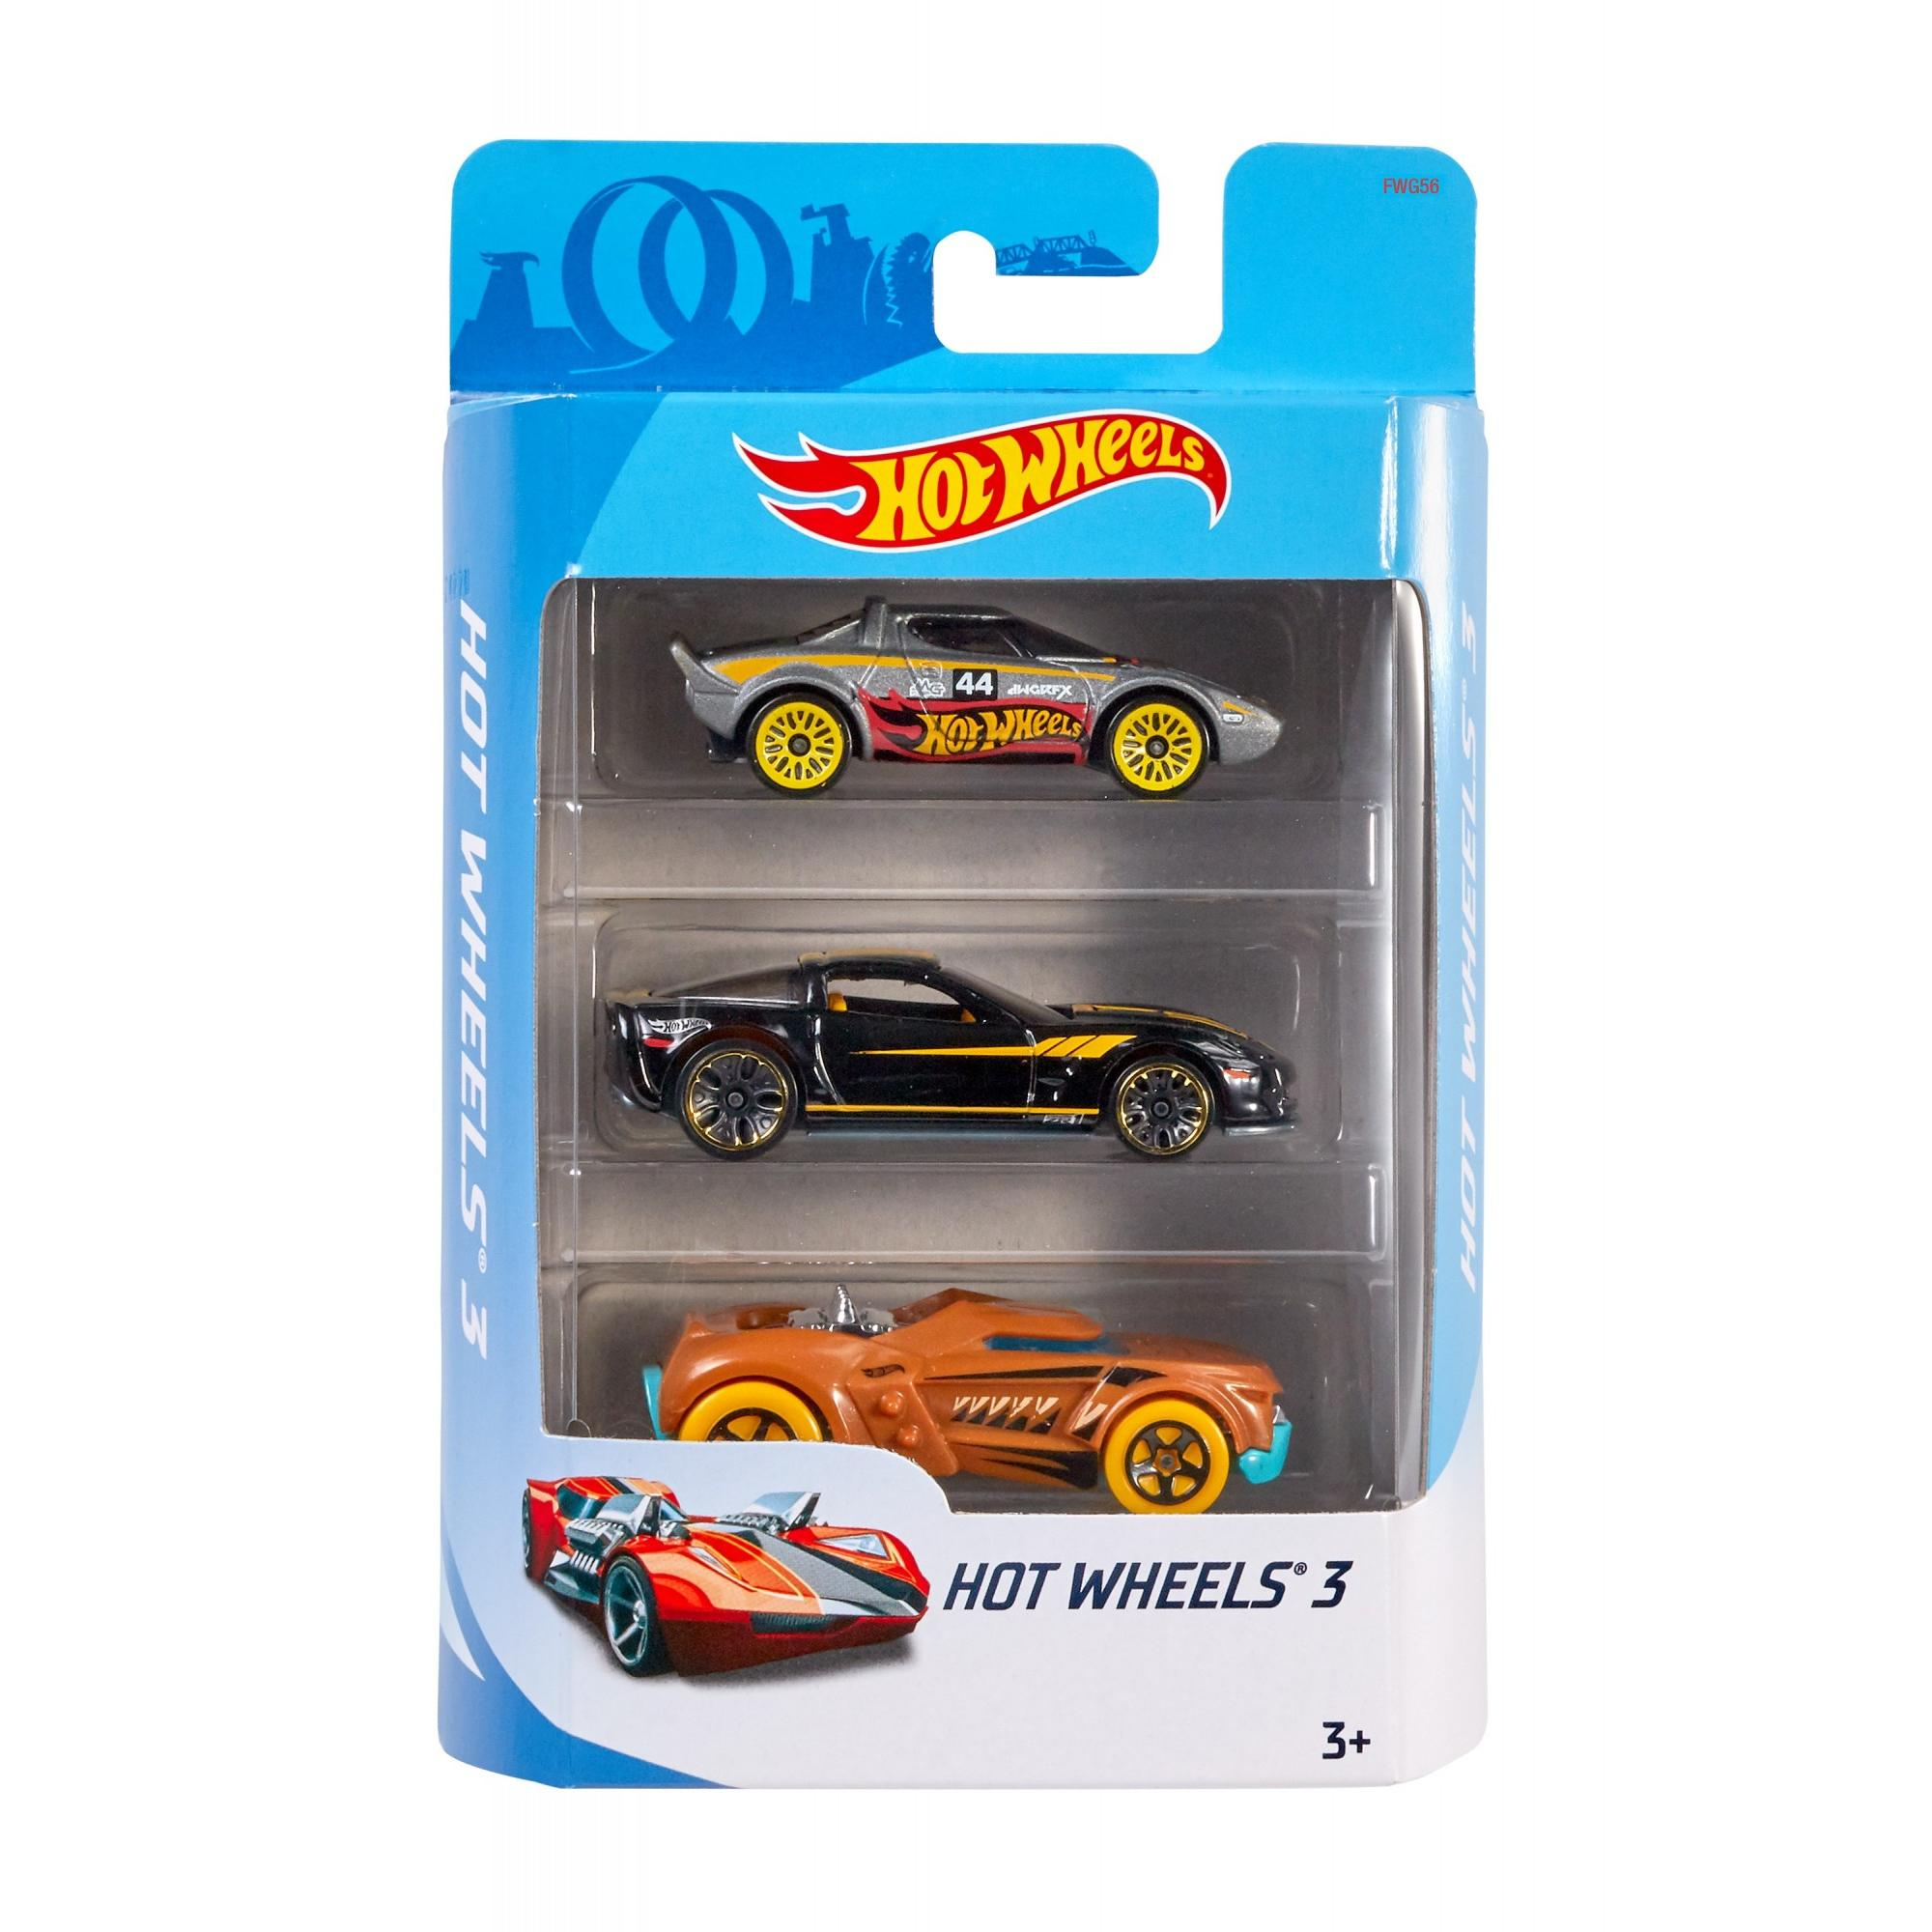 Hot Wheels 3-Pack (Styles May Vary)